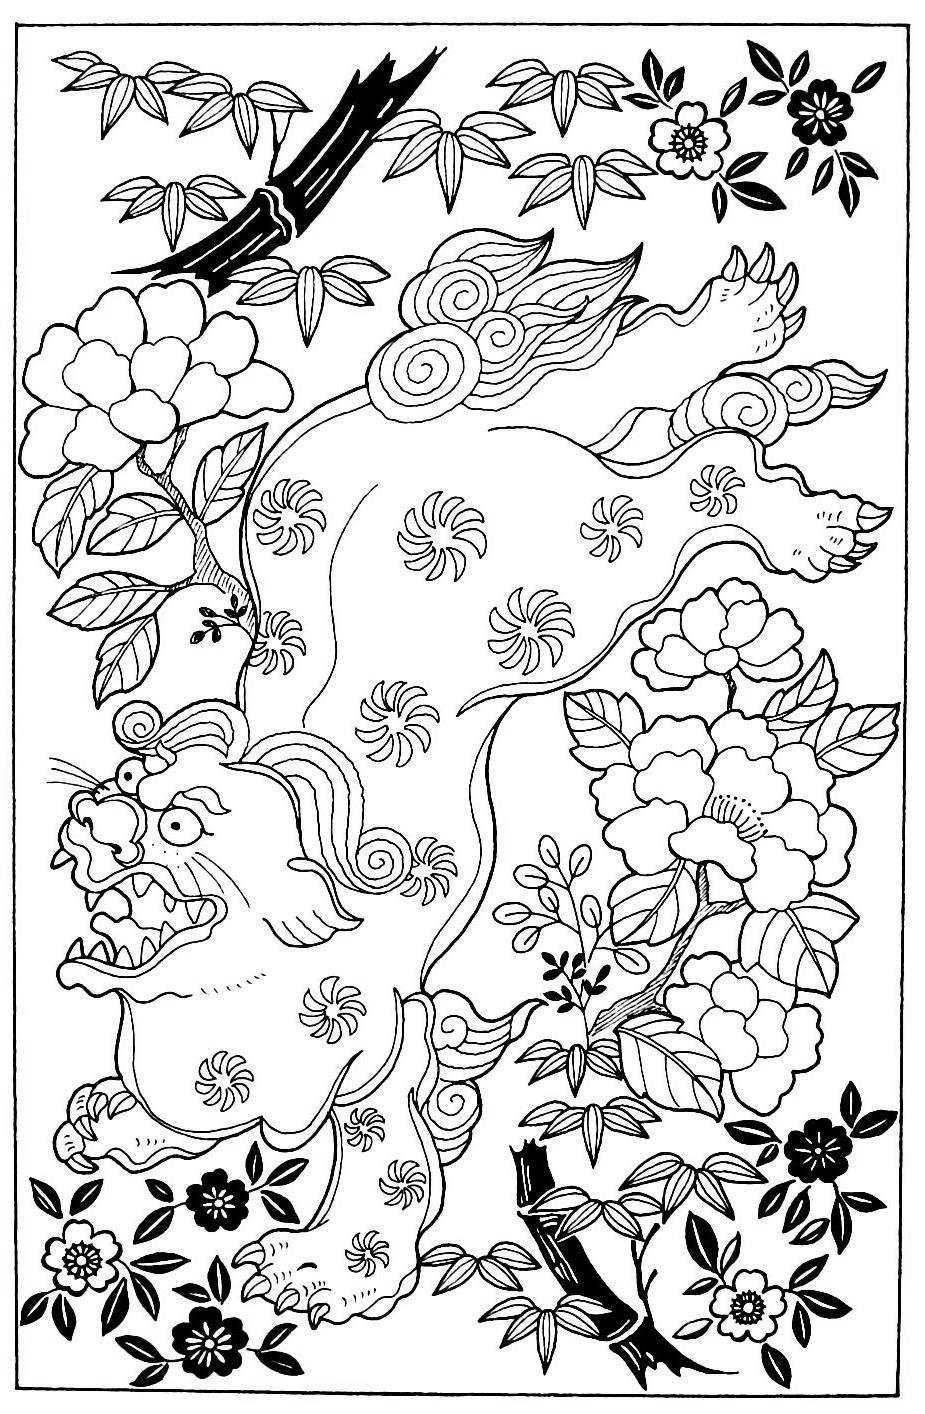 Free Bamboo Coloring Pages Lion Peonies printable